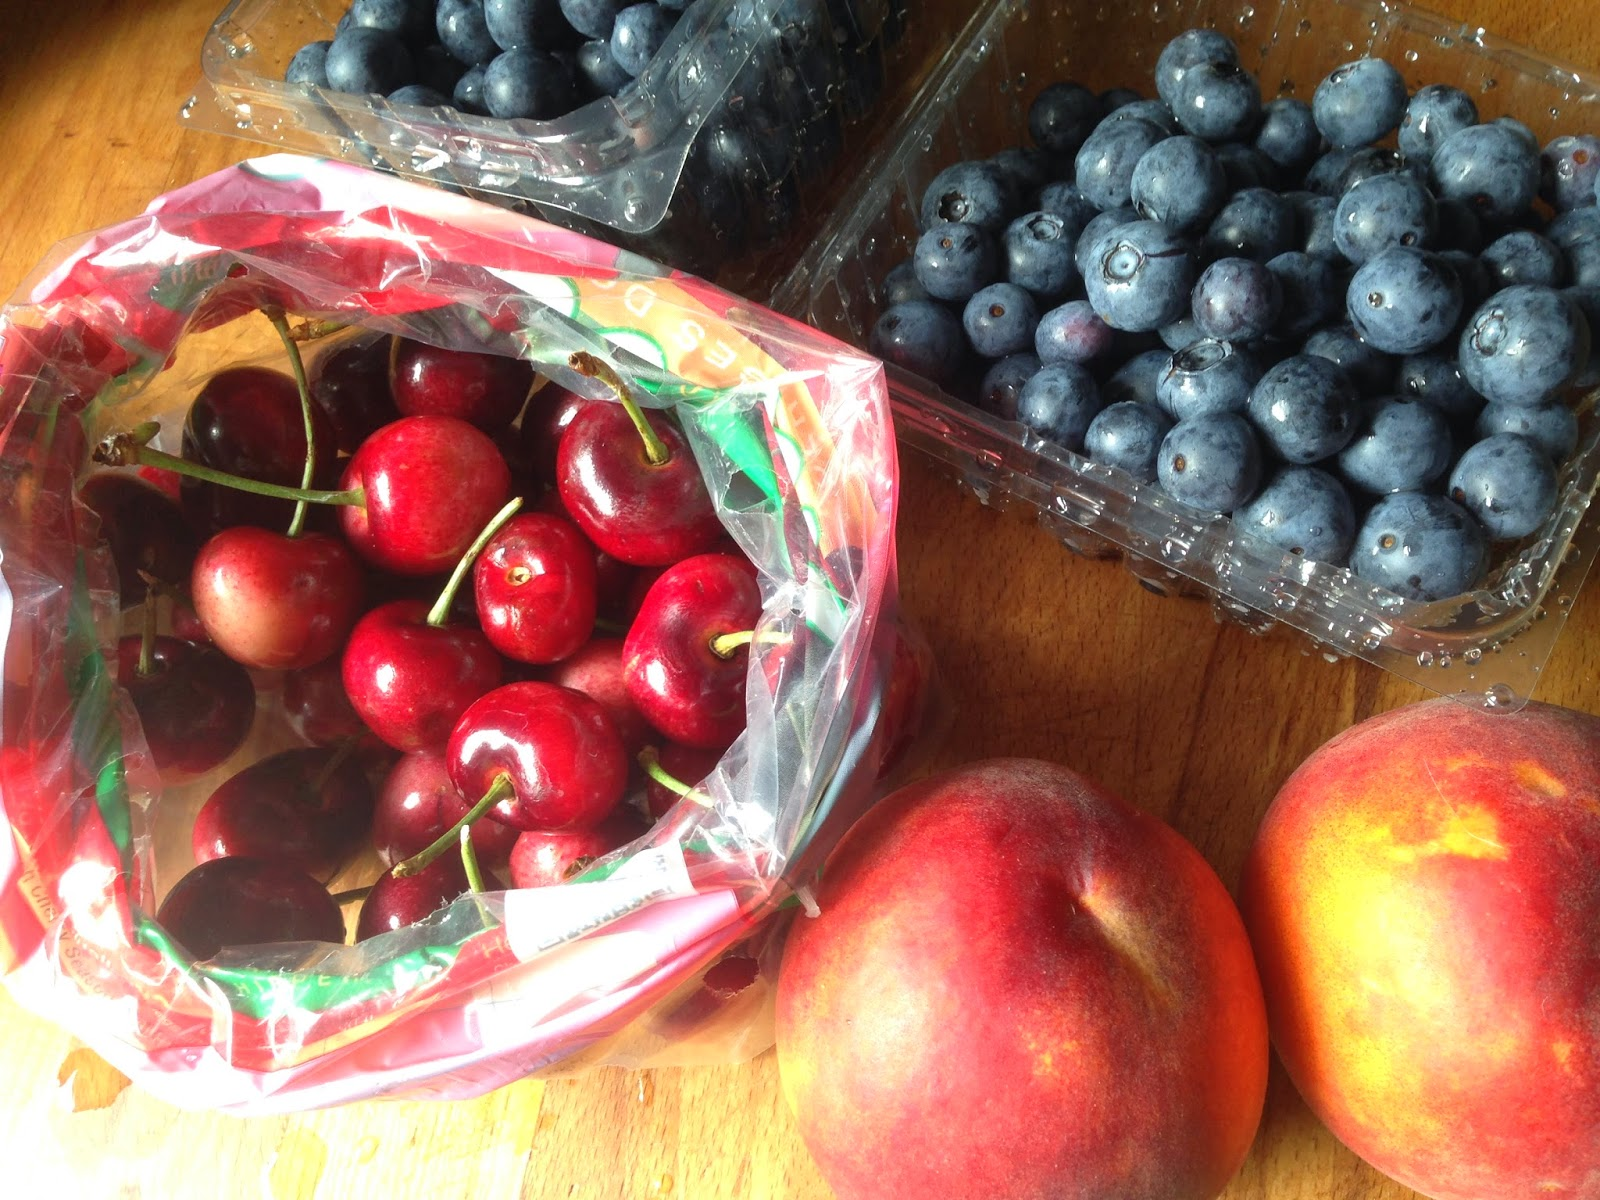 blueberries, cherries, peaches